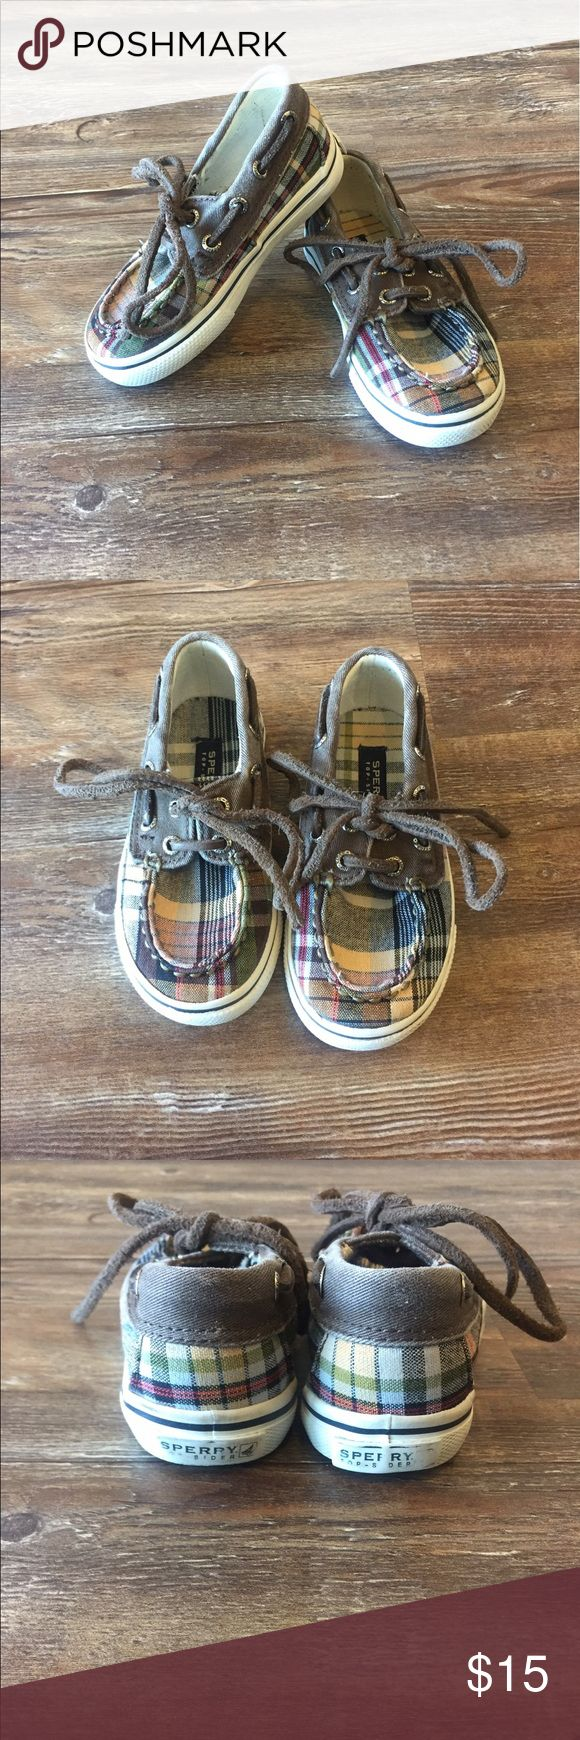 Selling this Boys Sperry Top-Sider  Sz. 6 on Poshmark! My username is: reinspired. #shopmycloset #poshmark #fashion #shopping #style #forsale #Sperry Top-Sider #Other